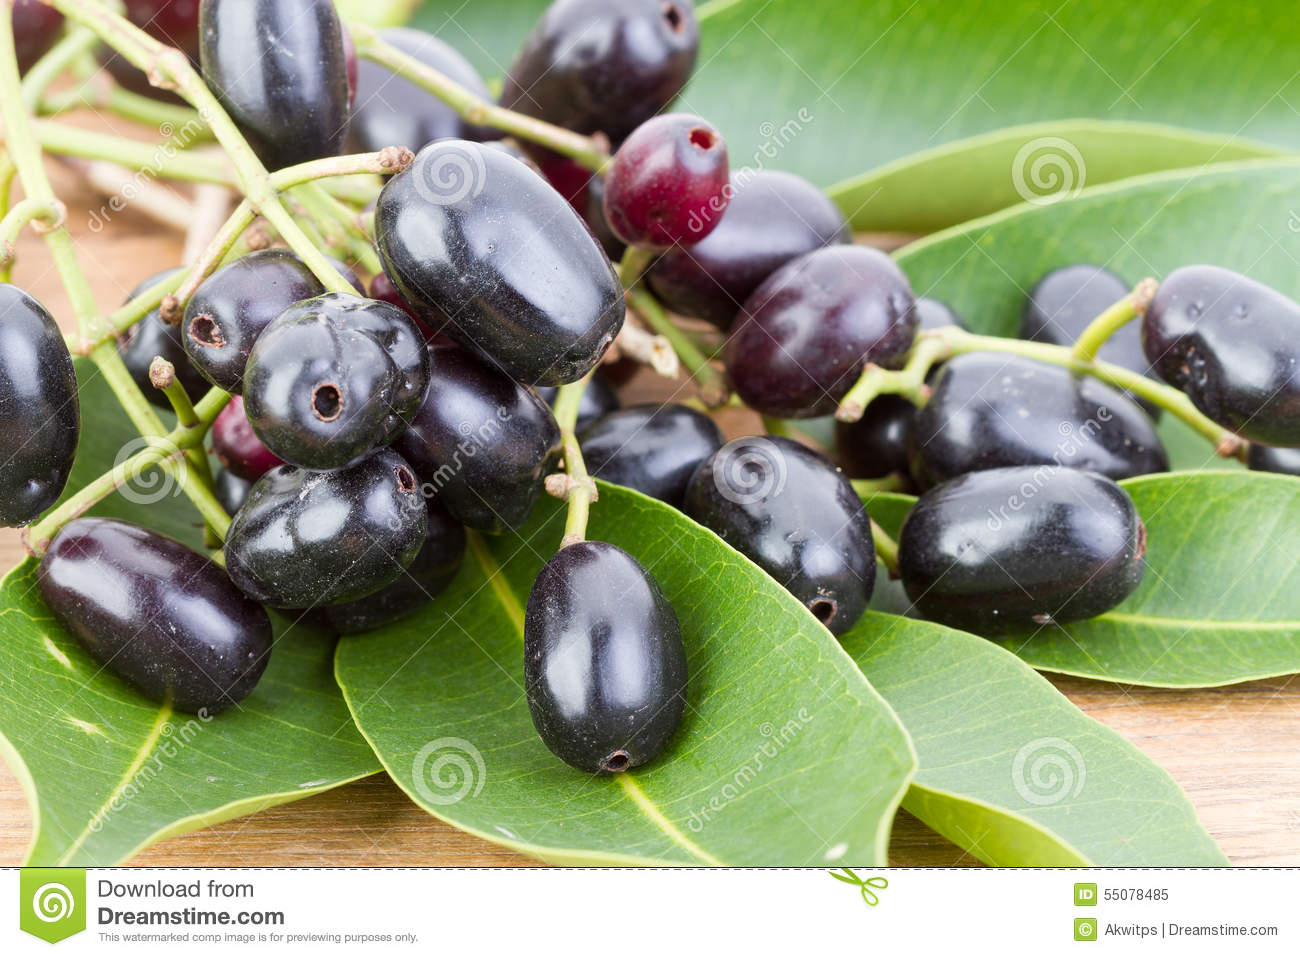 Syzygium Cumini Stock Photos, Images, & Pictures.